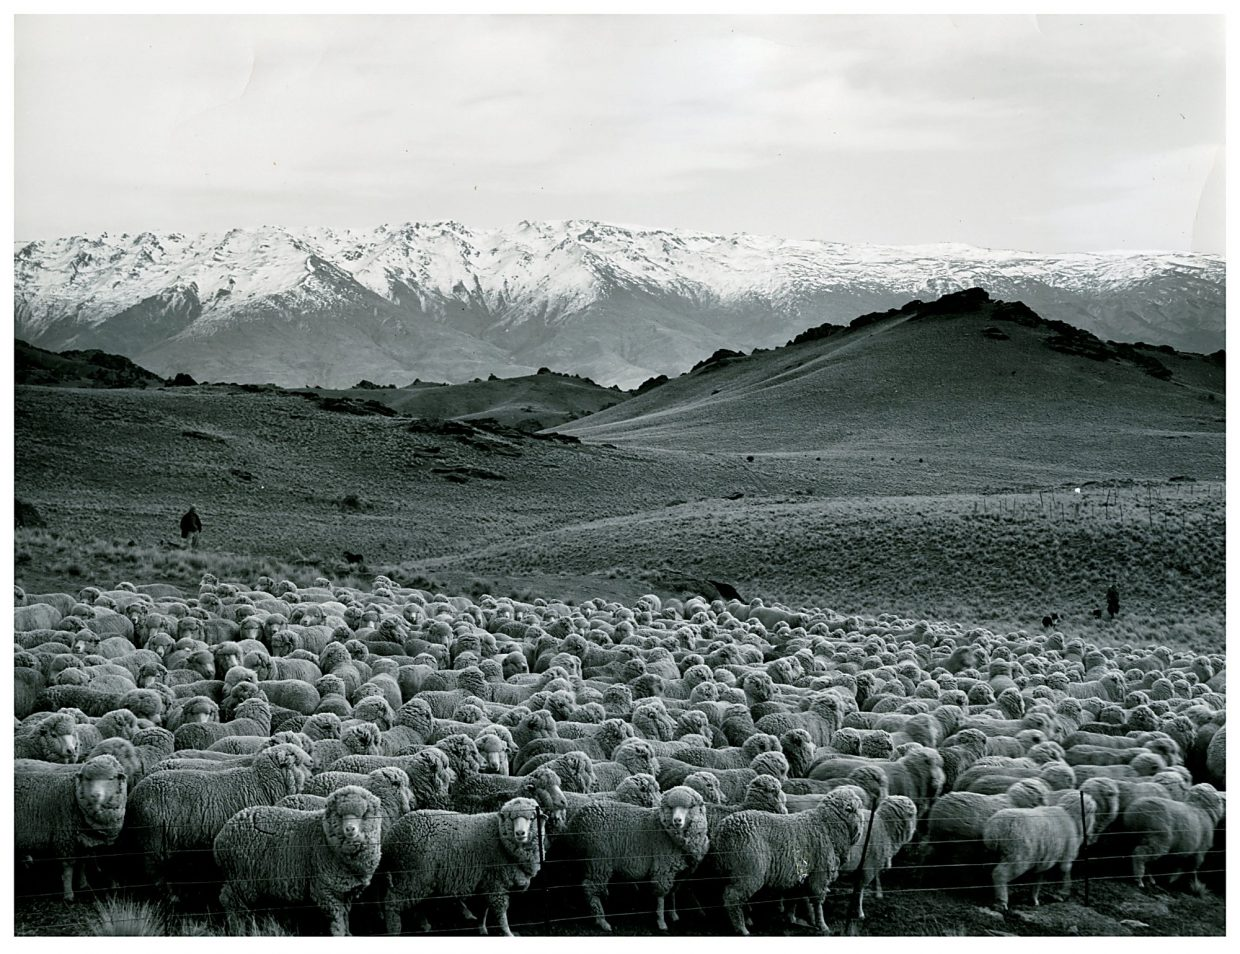 Merino sheep, which live in the mountains of New Zealand, have wool that helps them regulate their temperature in variable weather.